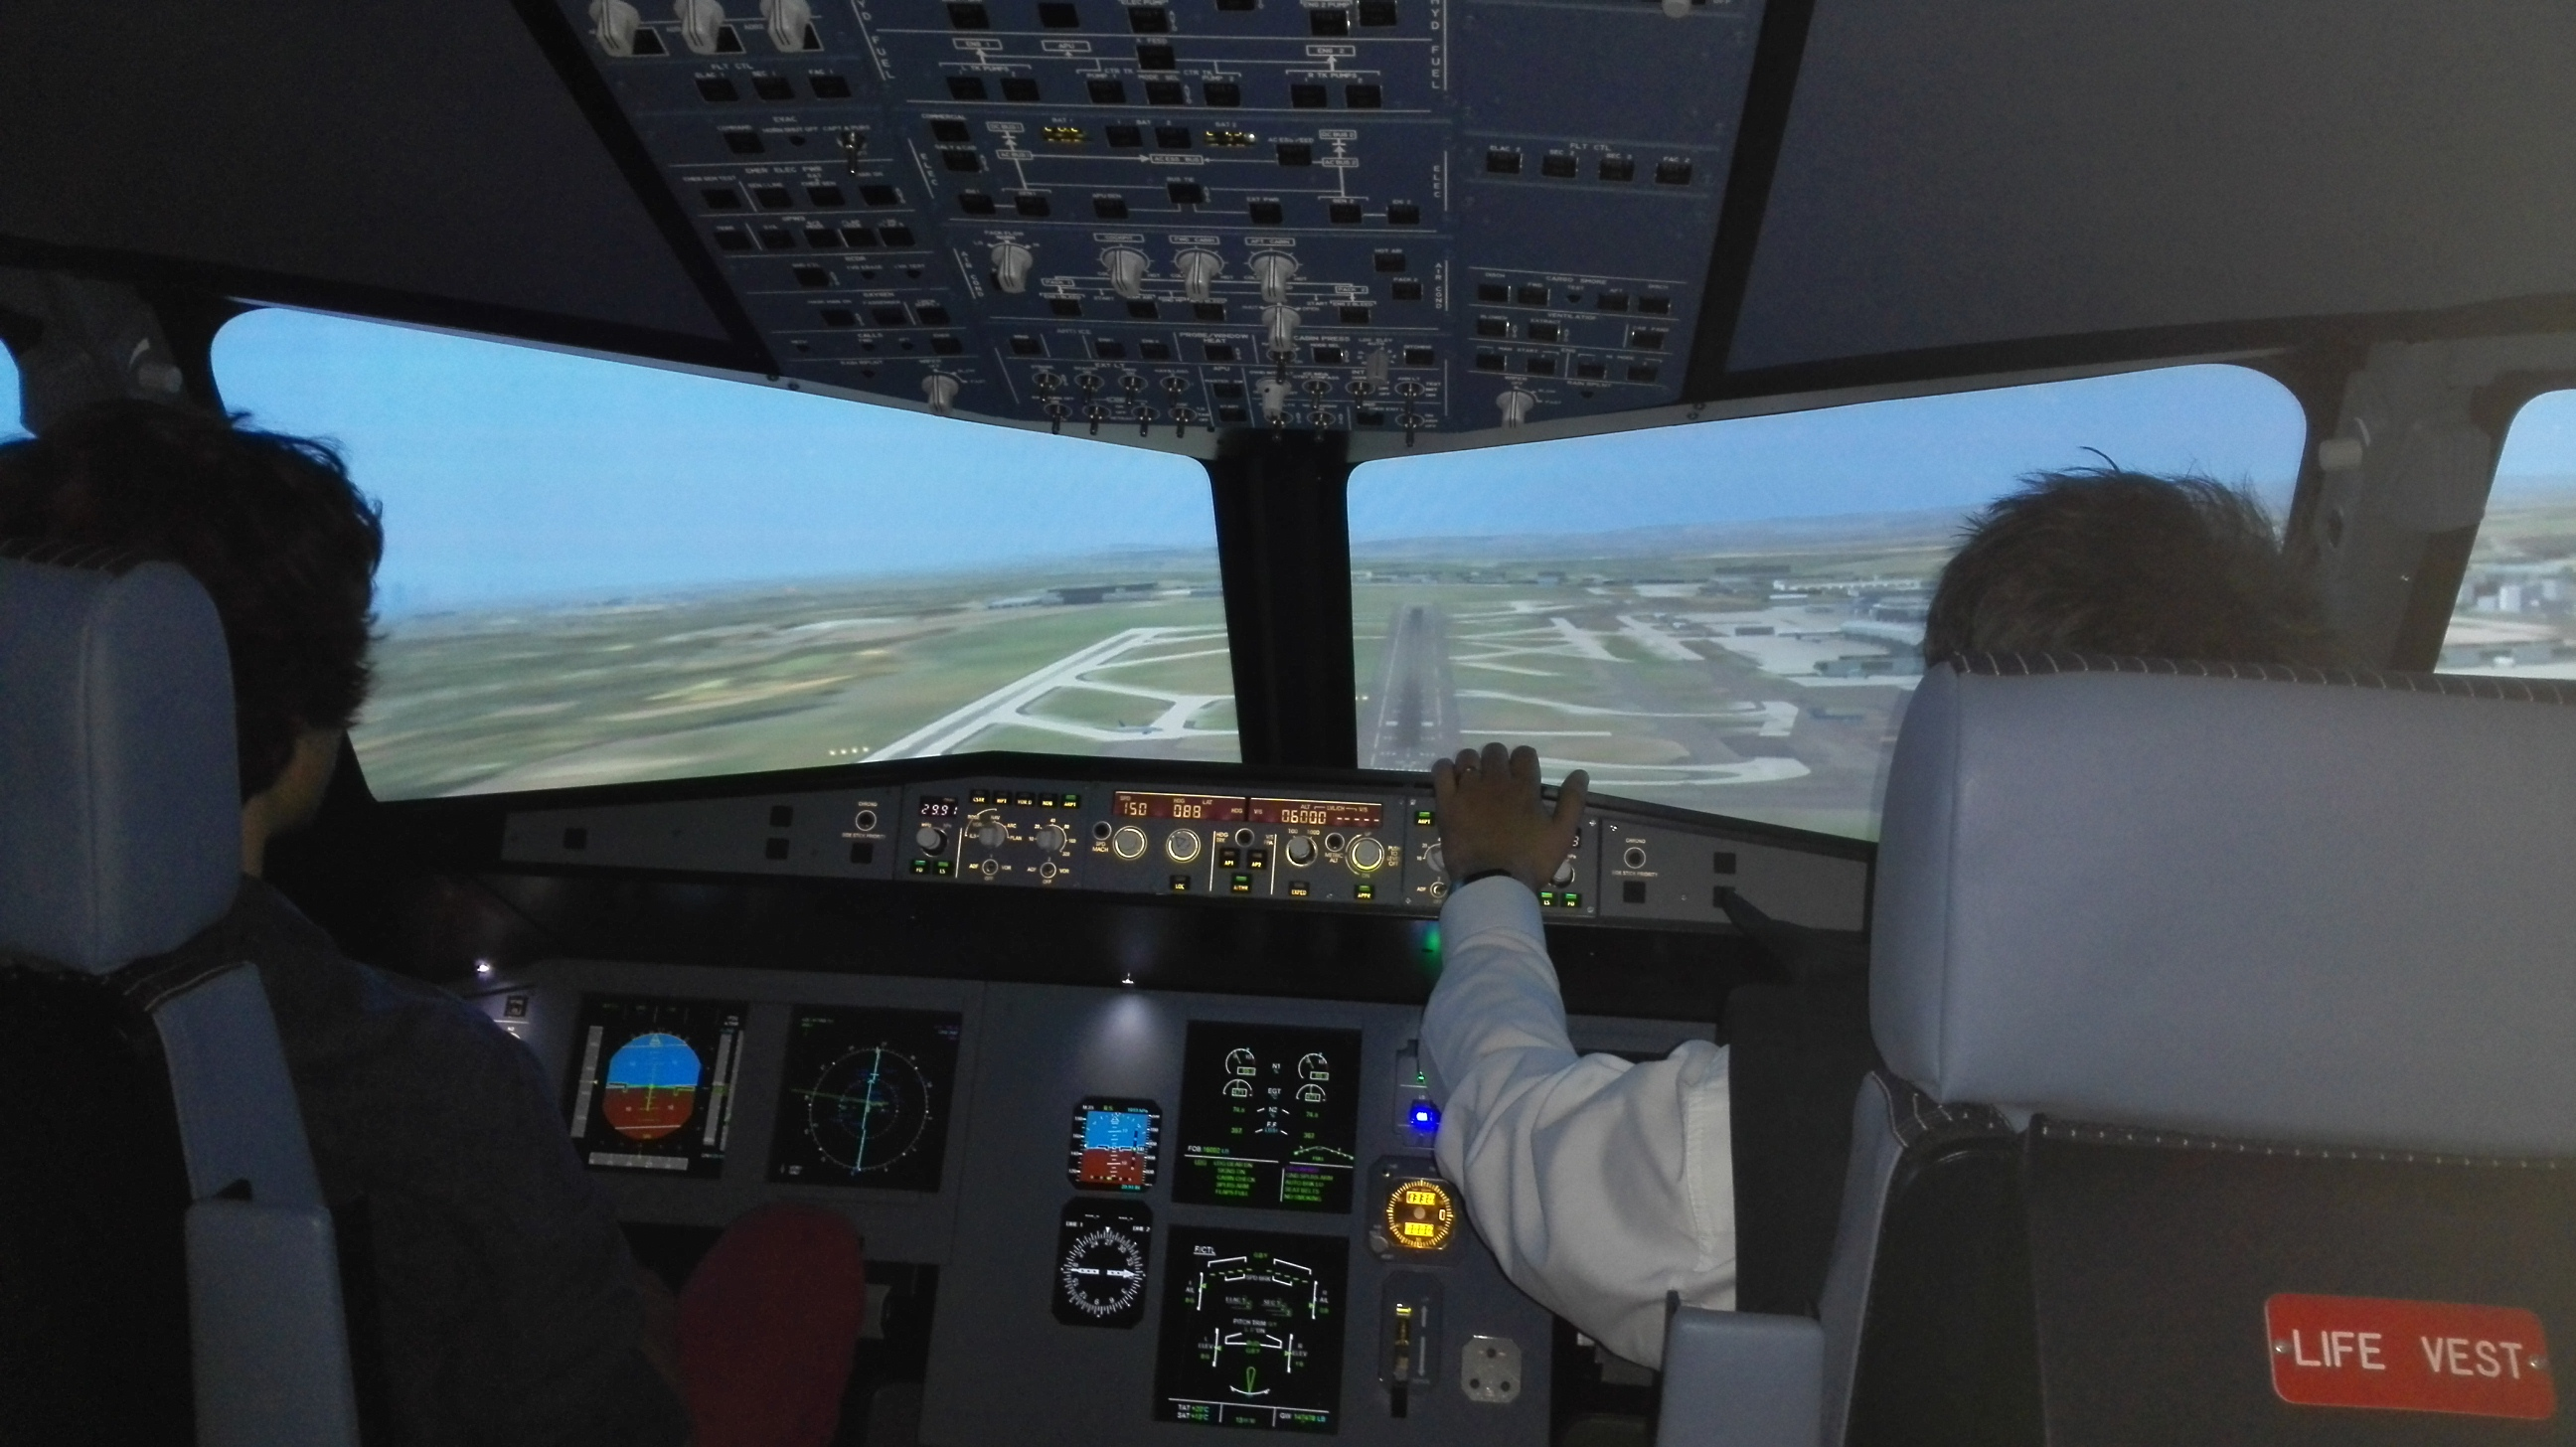 iflight simulator airbus a320 situ marne la vall e les simulateurs de vol. Black Bedroom Furniture Sets. Home Design Ideas